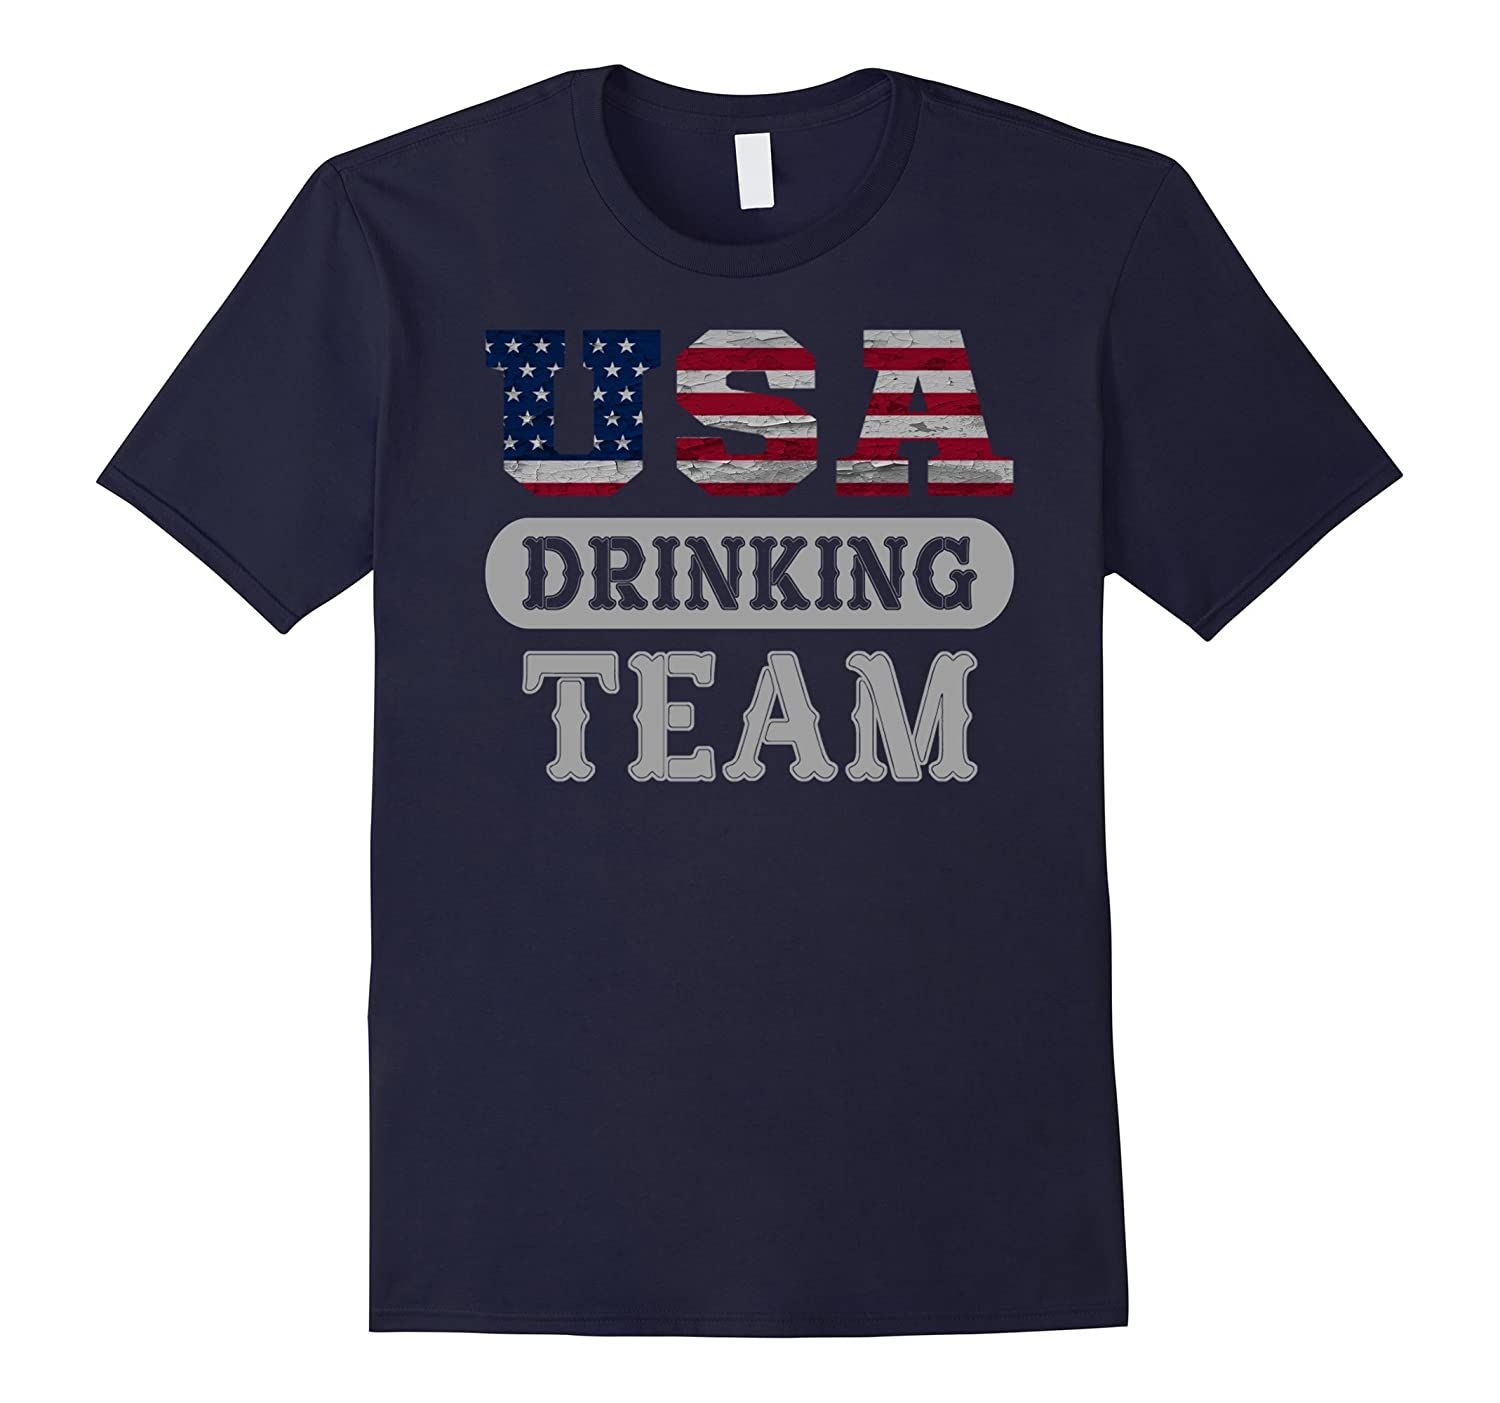 USA Drinking Team T-Shirt - Sport Games - Unisex sleeve-BN